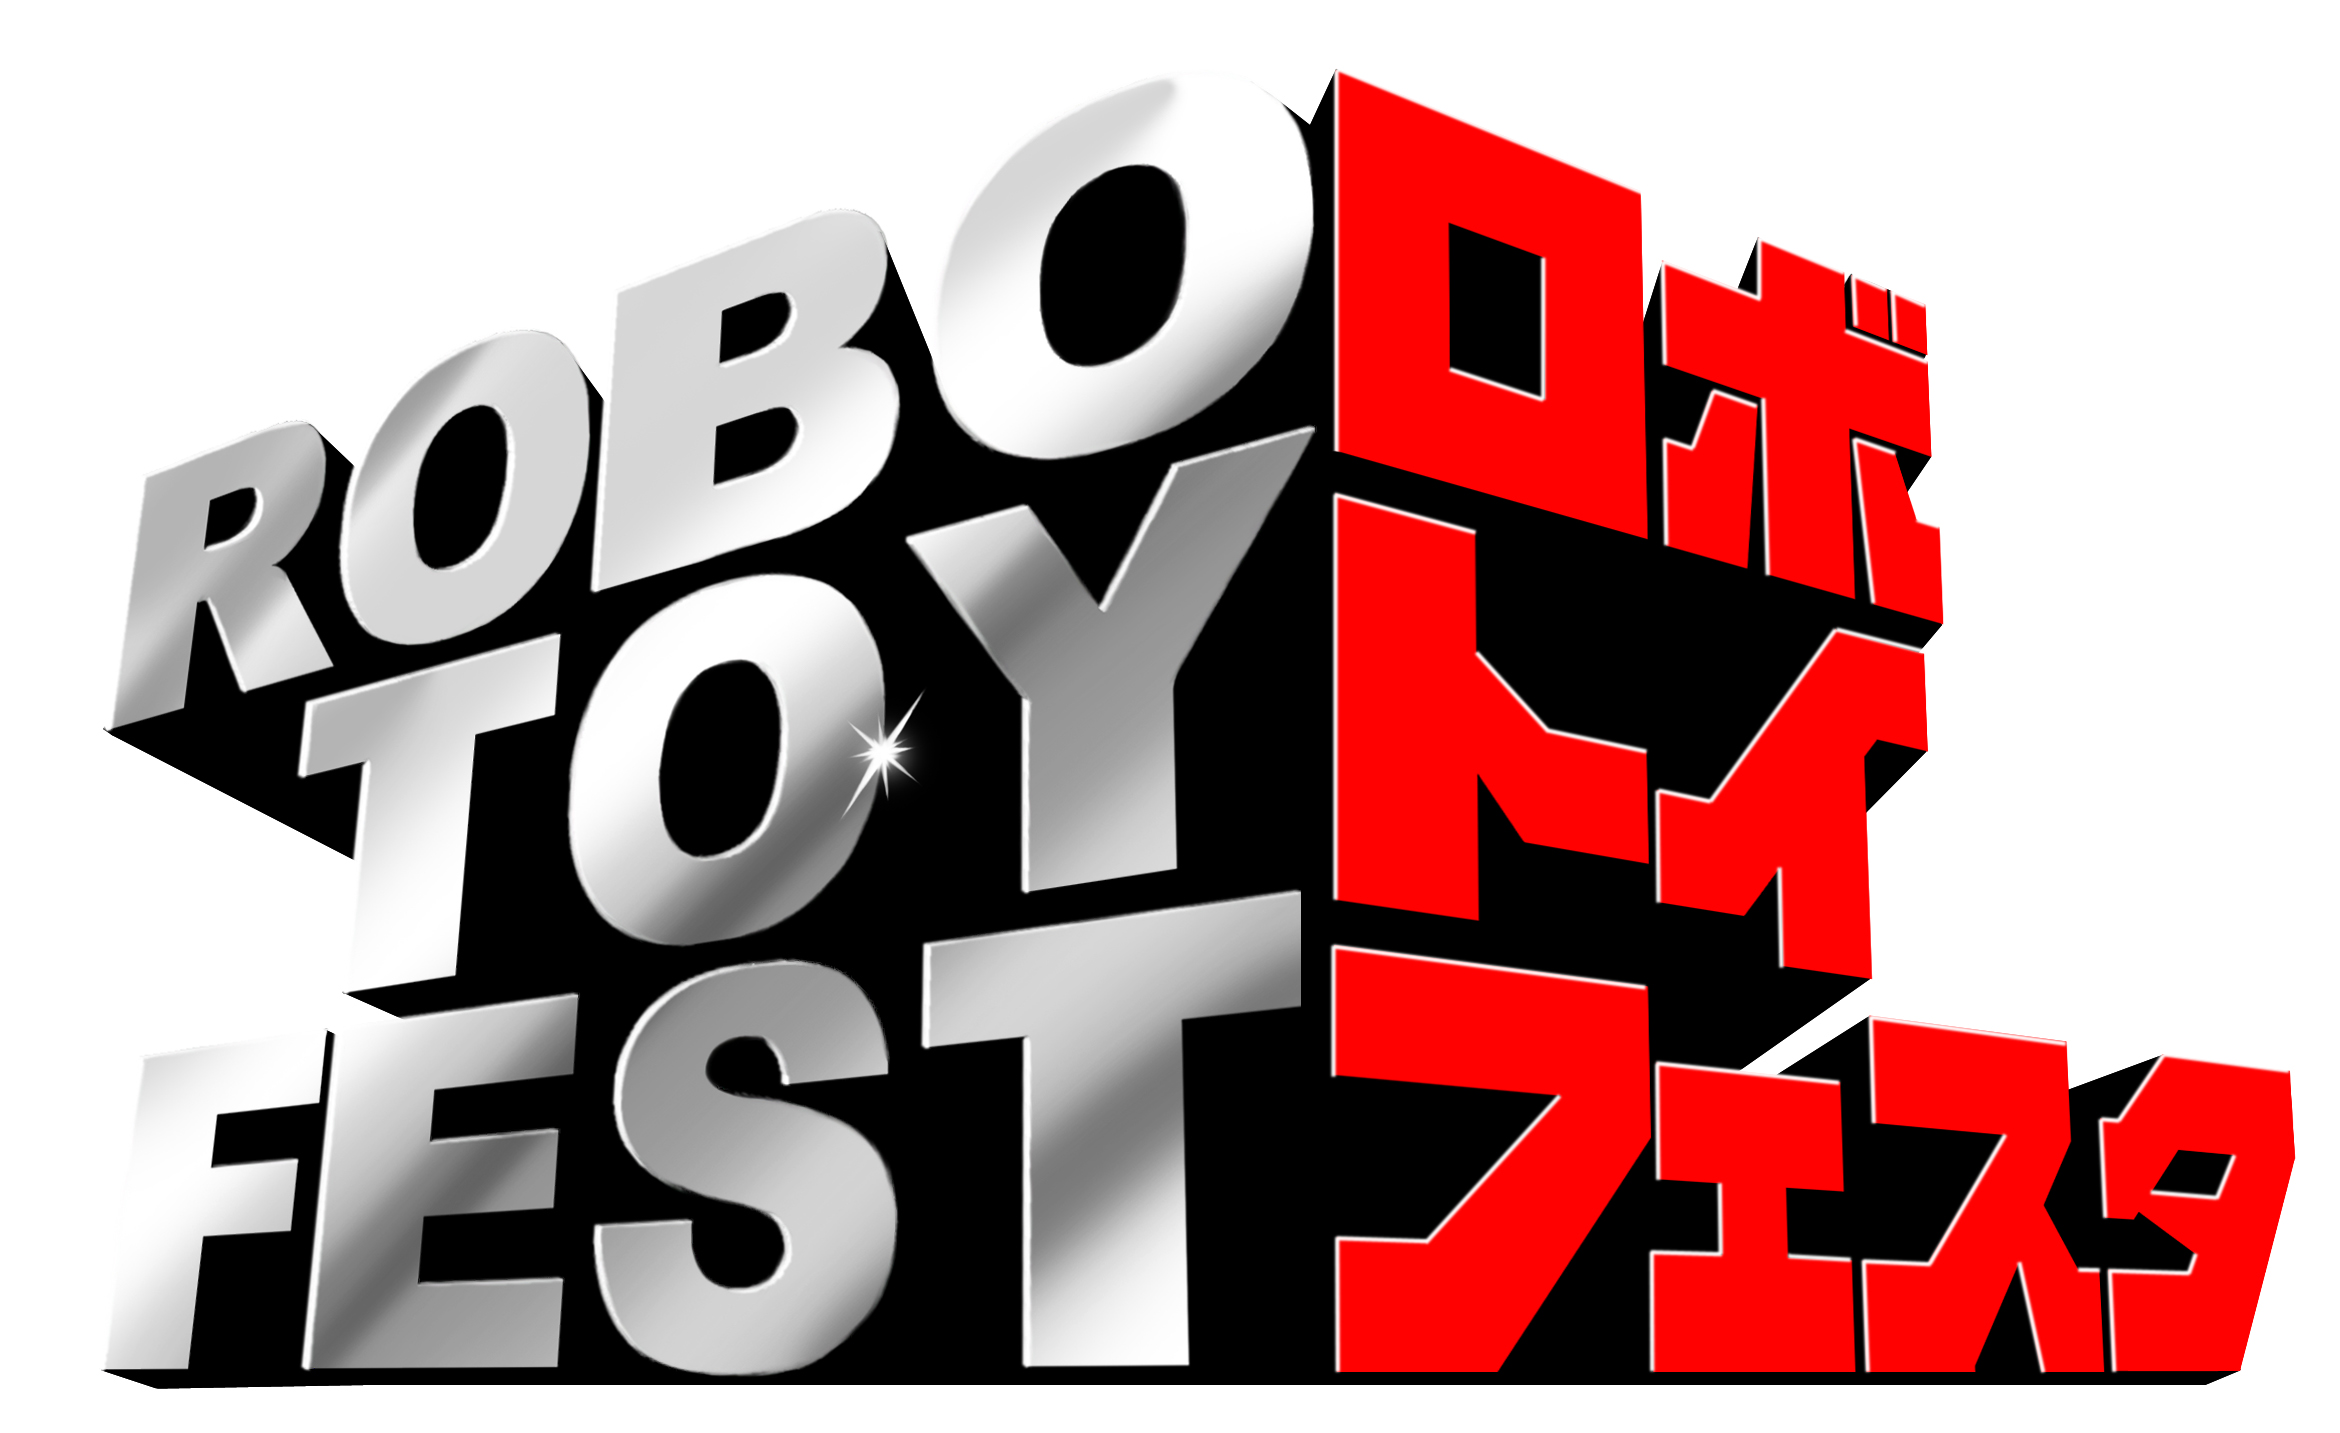 Tickets for Robo Toy Fest Vendor and Artist Tables in Pasadena from ShowClix